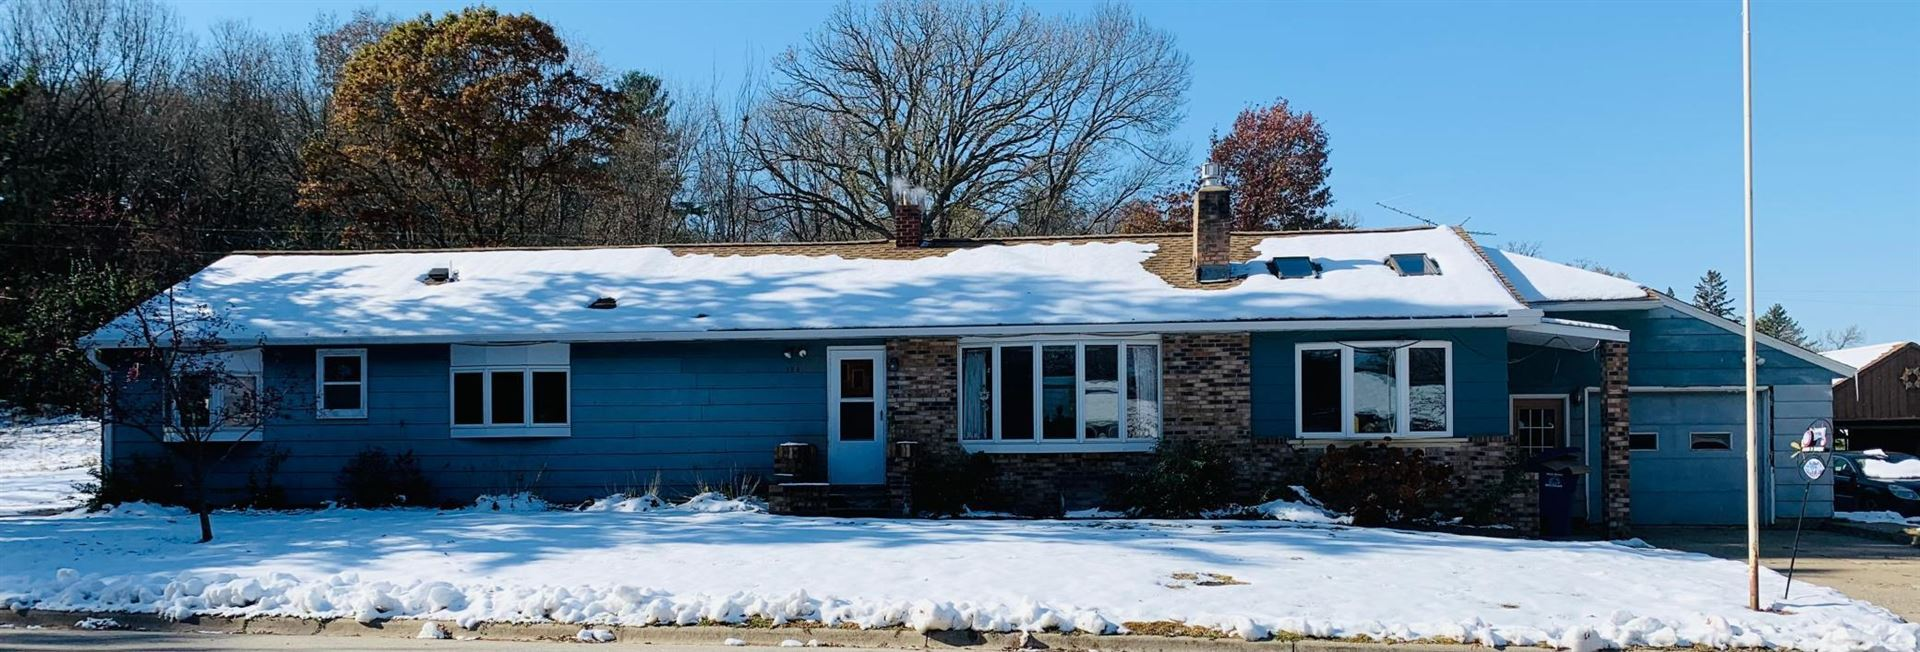 184 Rose Avenue, Red Wing, MN 55066 - MLS#: 5684652